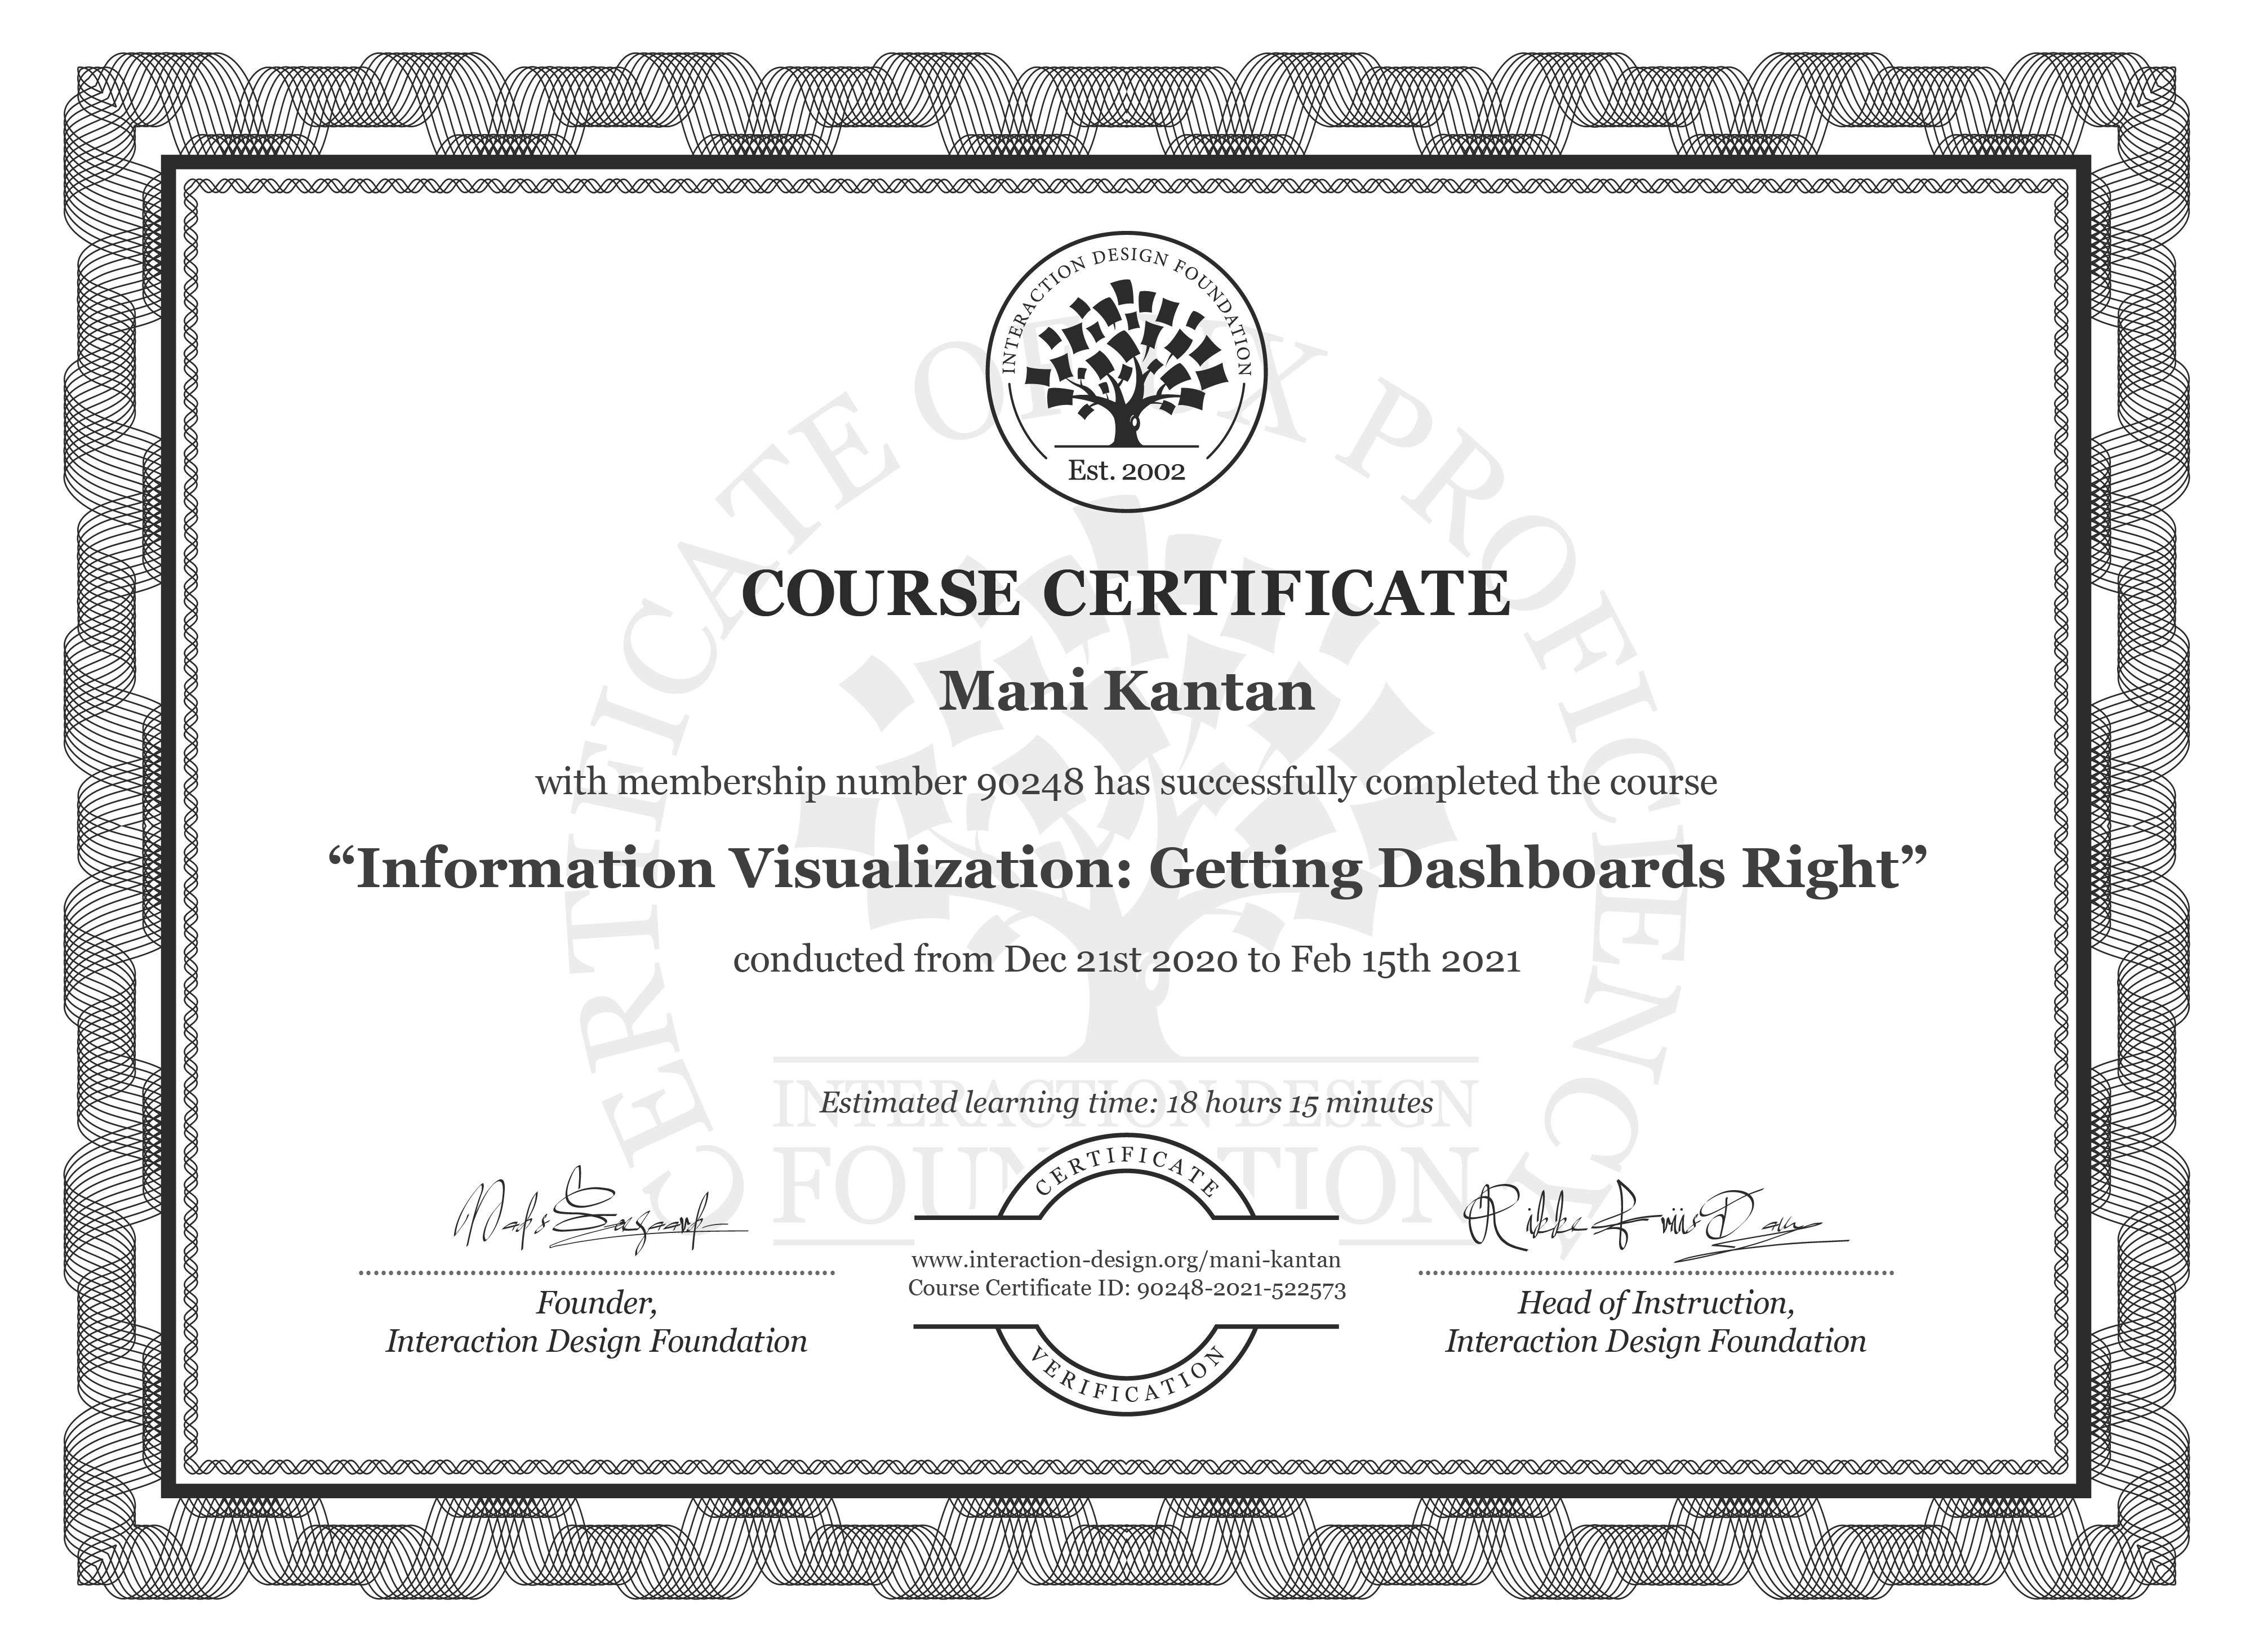 Mani Kantan's Course Certificate: Information Visualization: Getting Dashboards Right